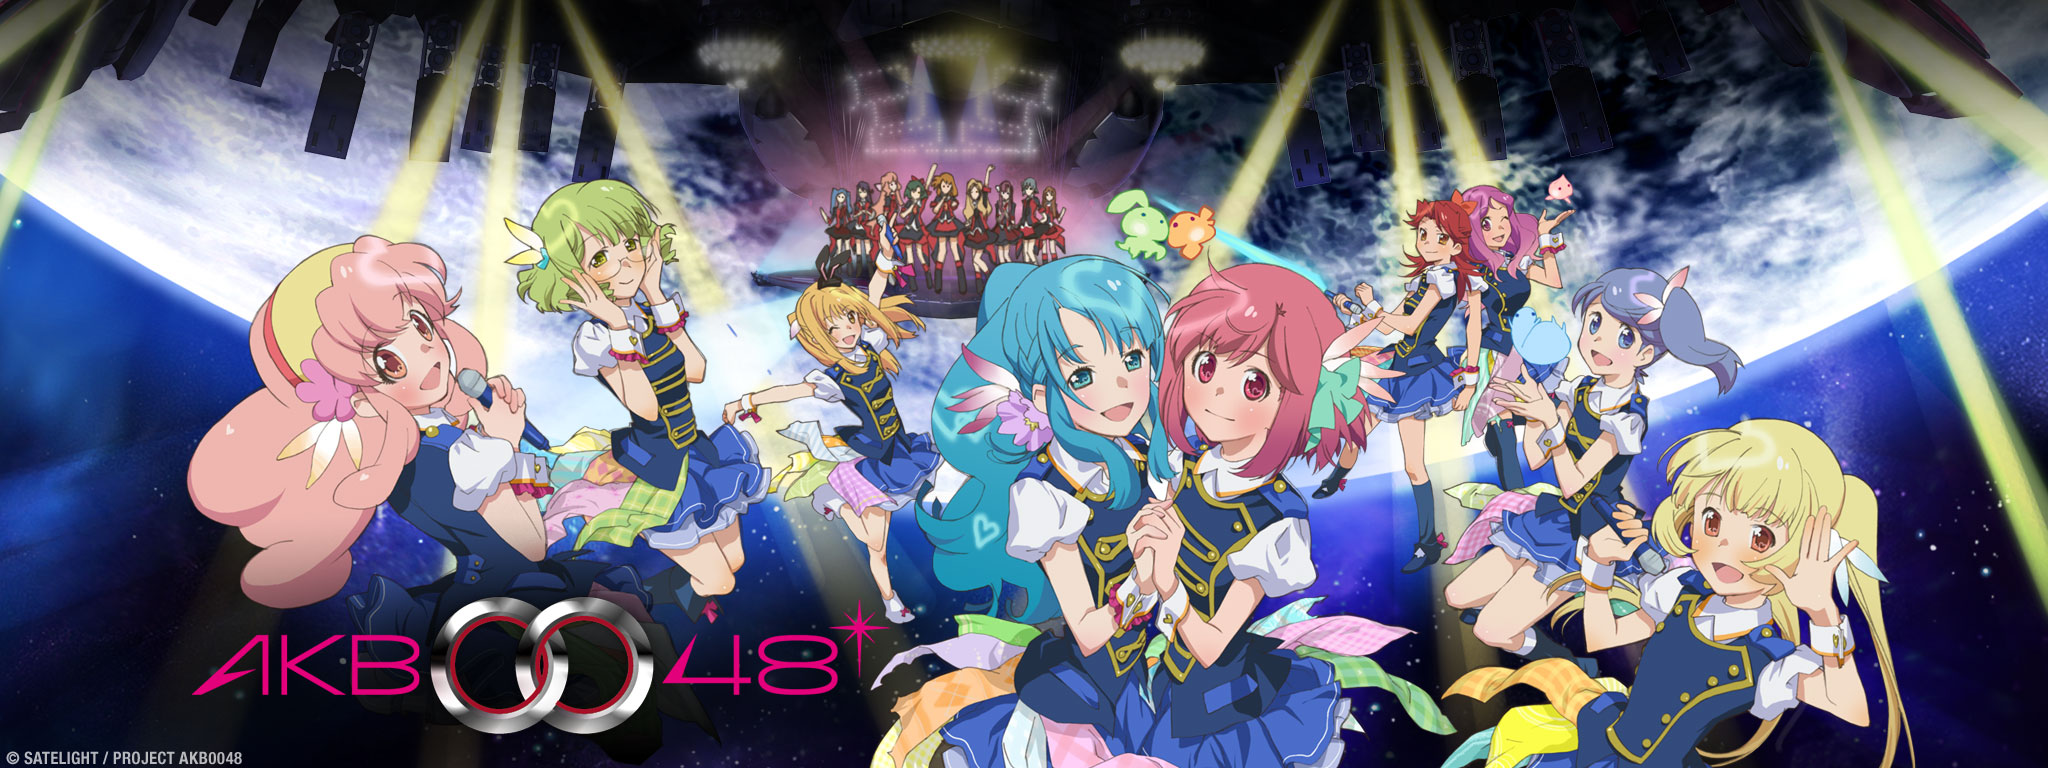 AKB0048 - Next Stage